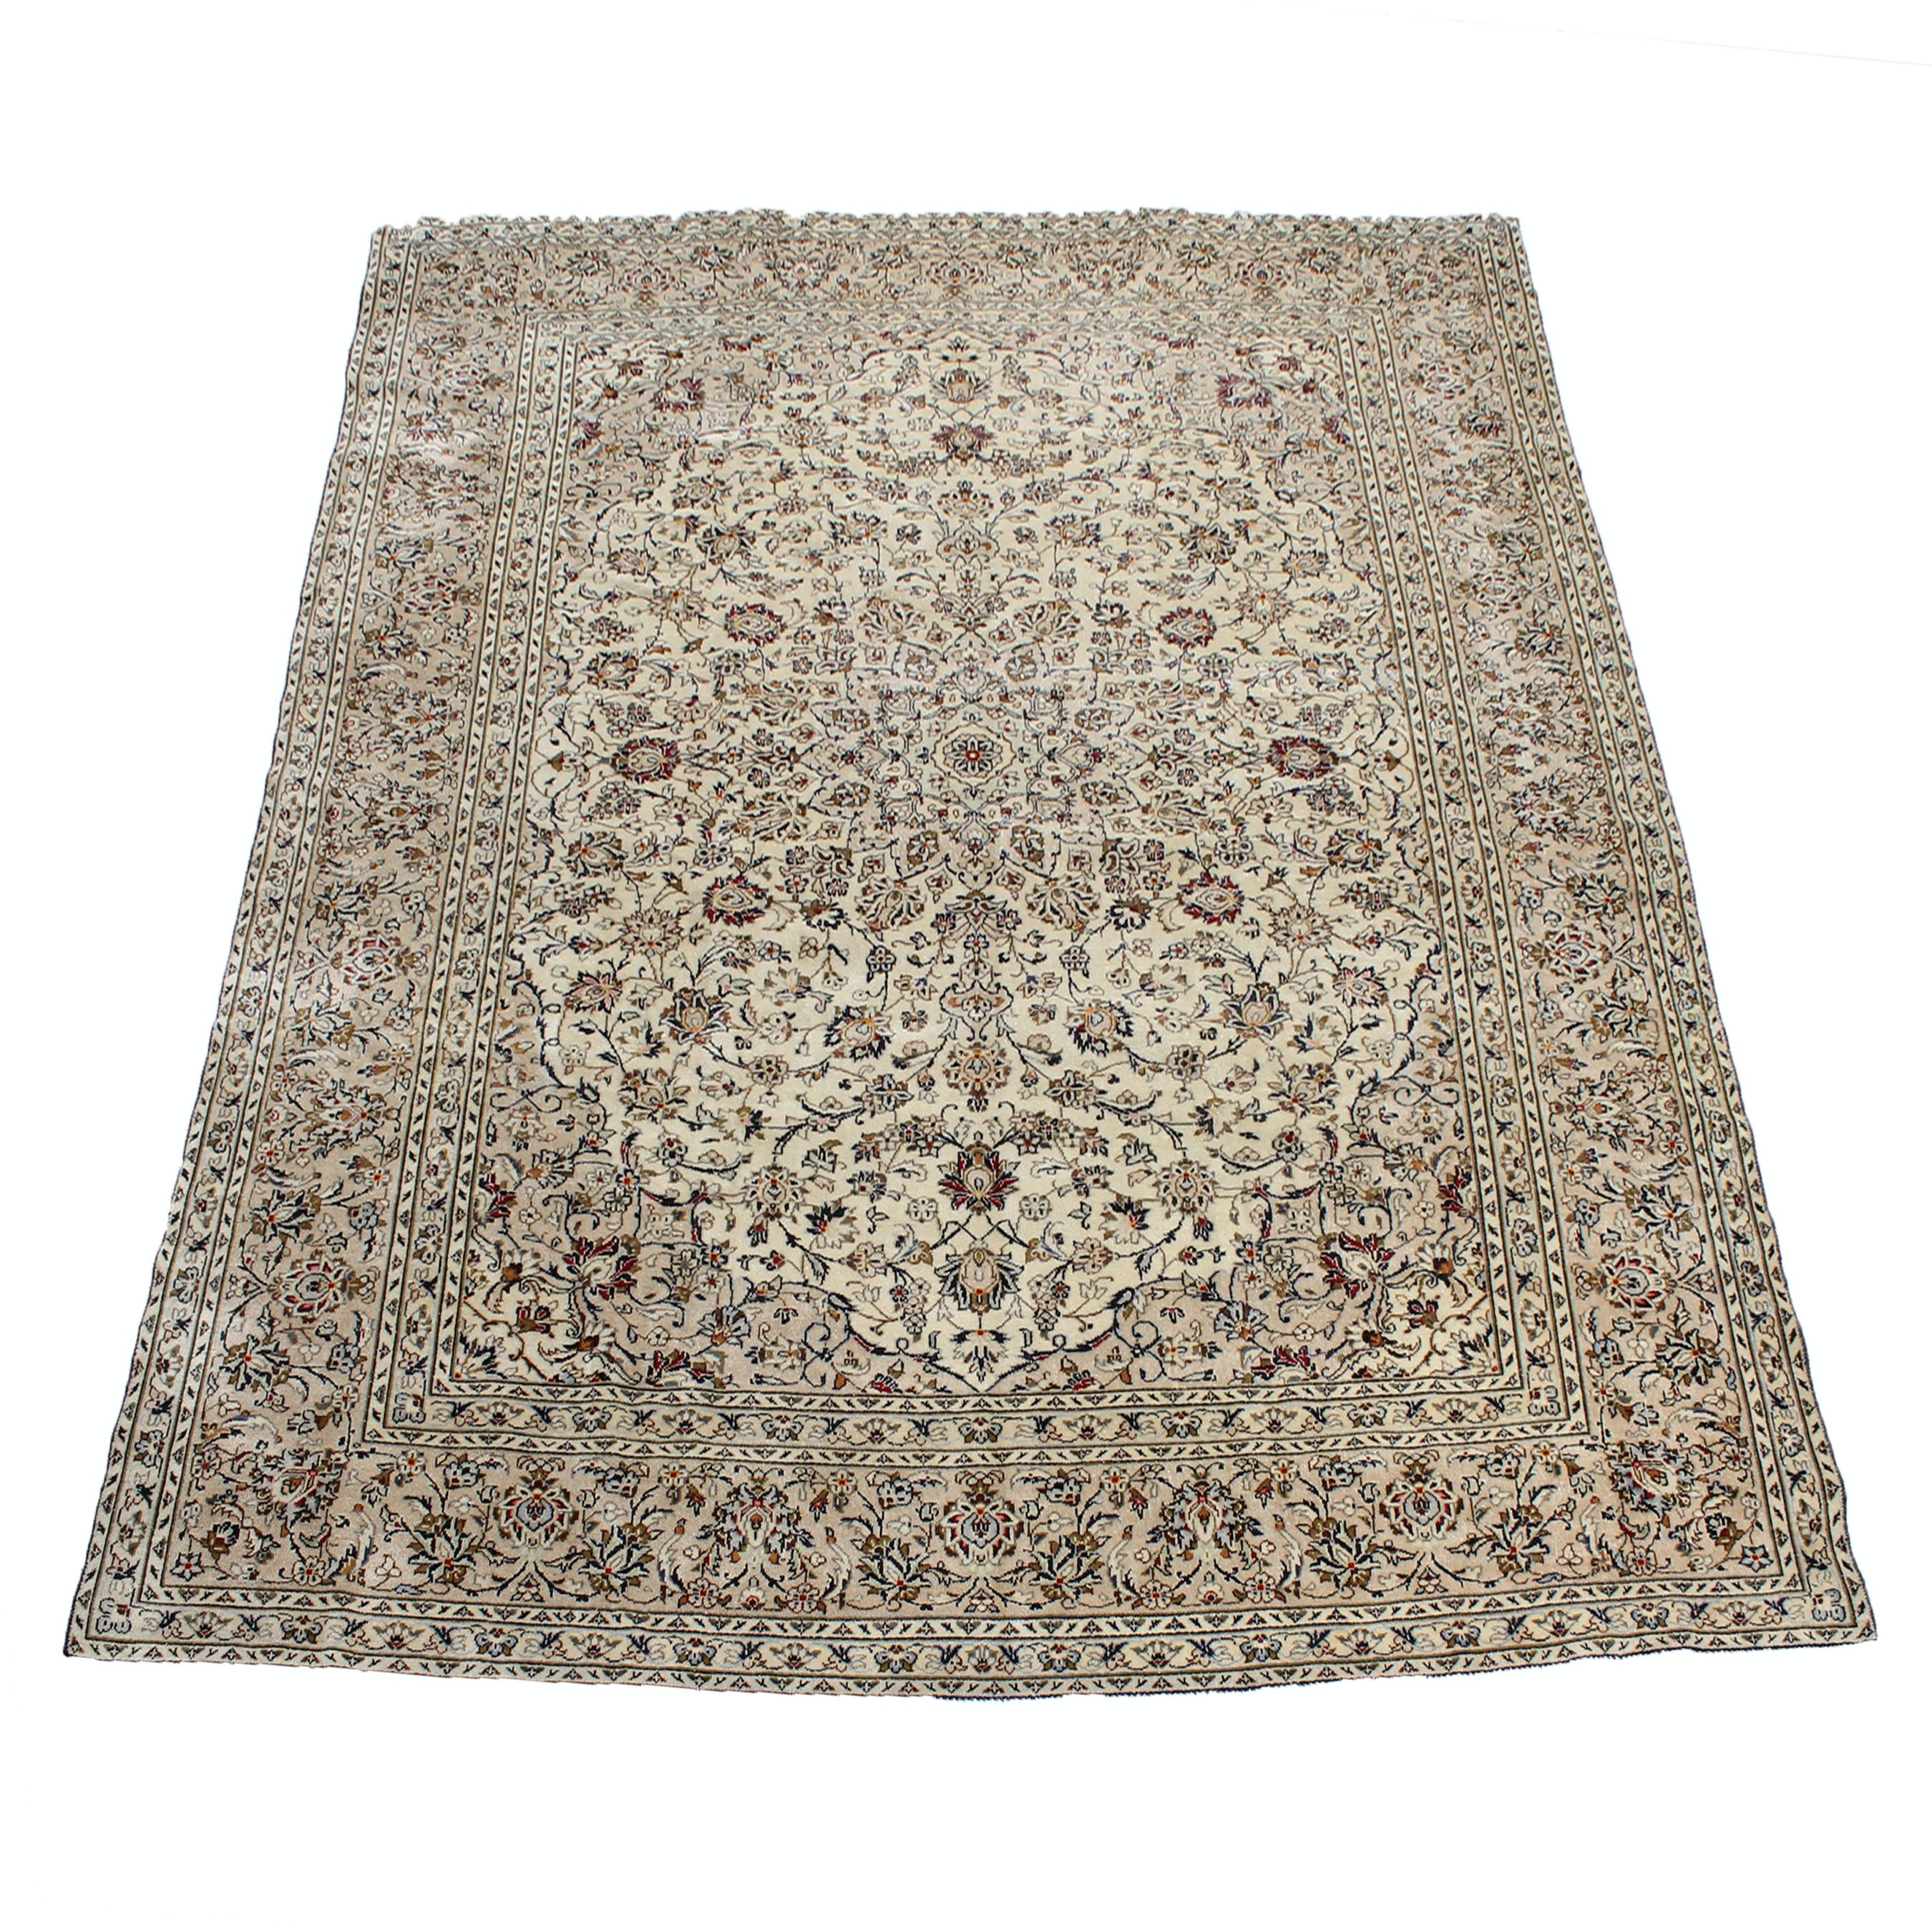 9' x 12' Vintage Hand-Knotted Persian Nain Area Rug